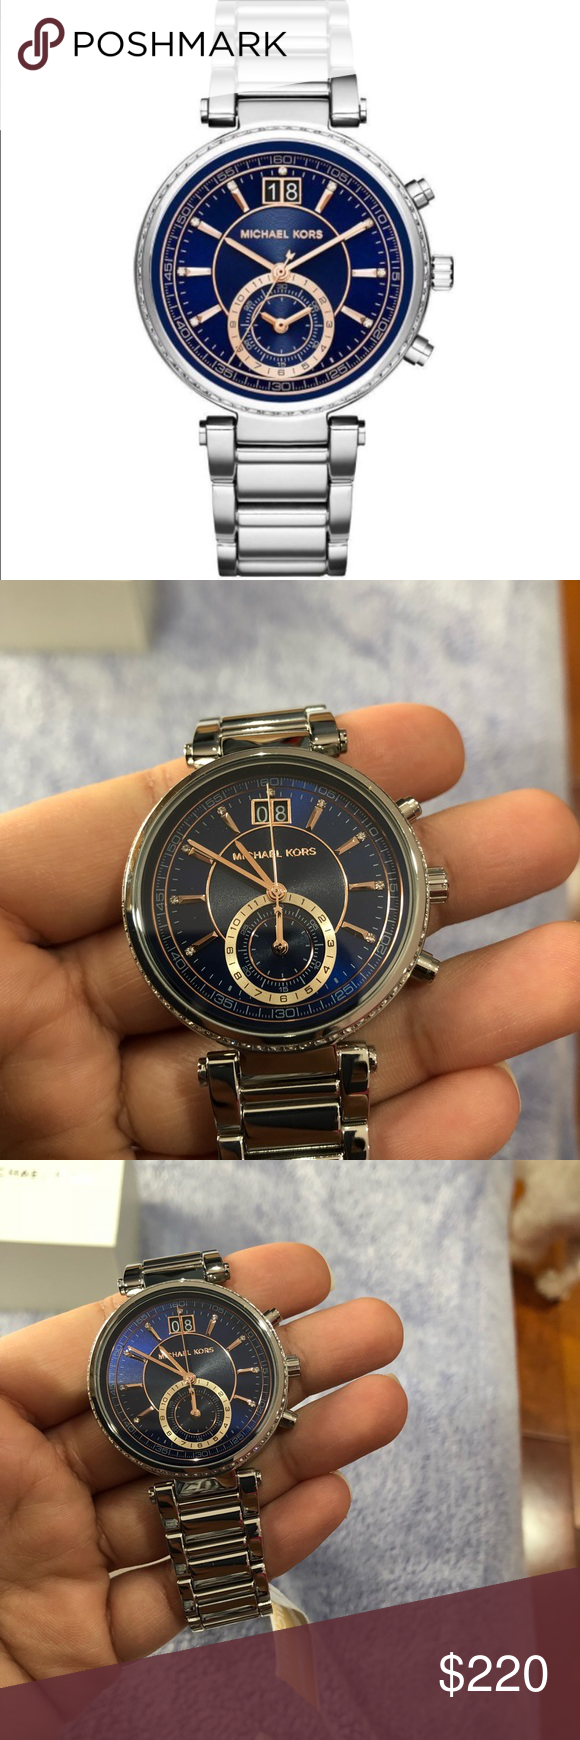 4a3f700ddc11 Michael Kors- Sawyer Blue Dial Watch MK6224 Brand new and never used Michael  Kors Sawyer